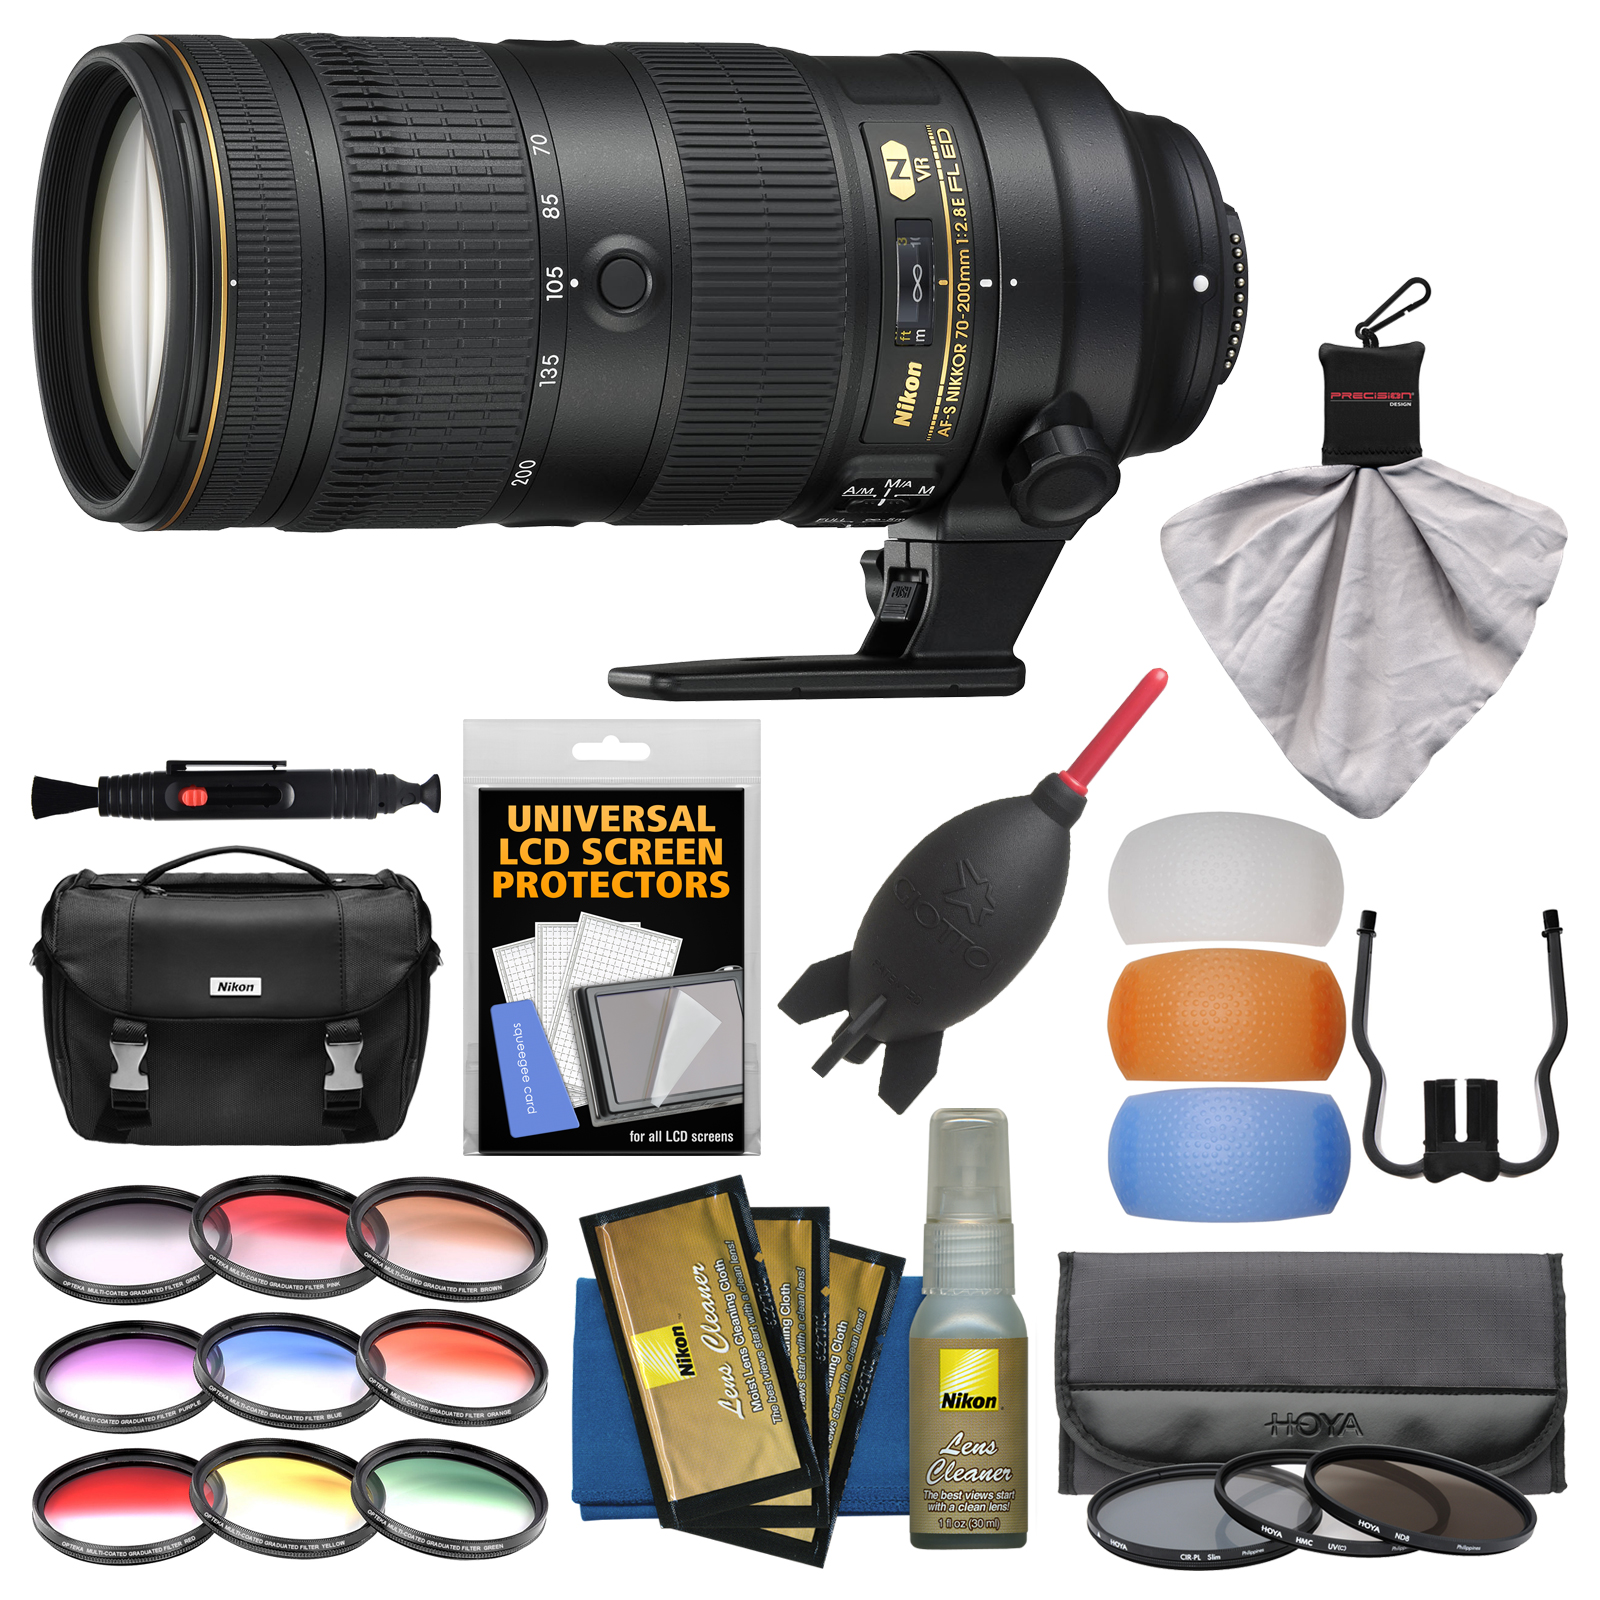 Nikon 70-200mm f/2.8E FL VR AF-S ED Zoom-Nikkor Lens with Case + 3 UV/CPL/ND8 Hoya & 9 Color Filters + Kit